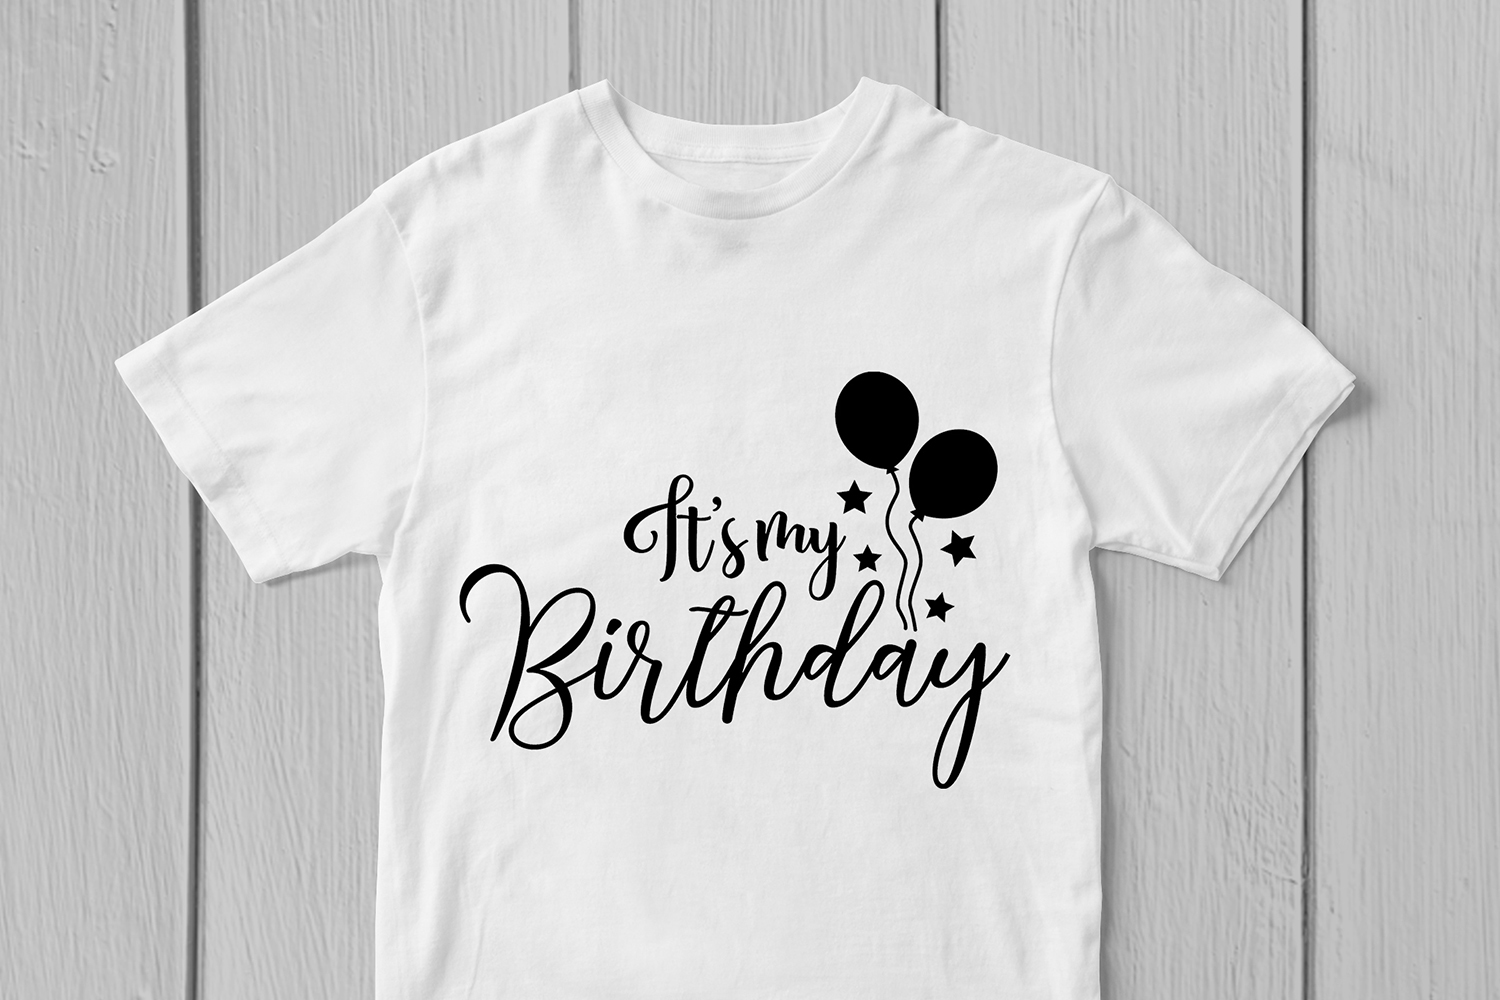 Its My Birthday - Birthday SVG EPS DXF PNG Cutting Files example image 2